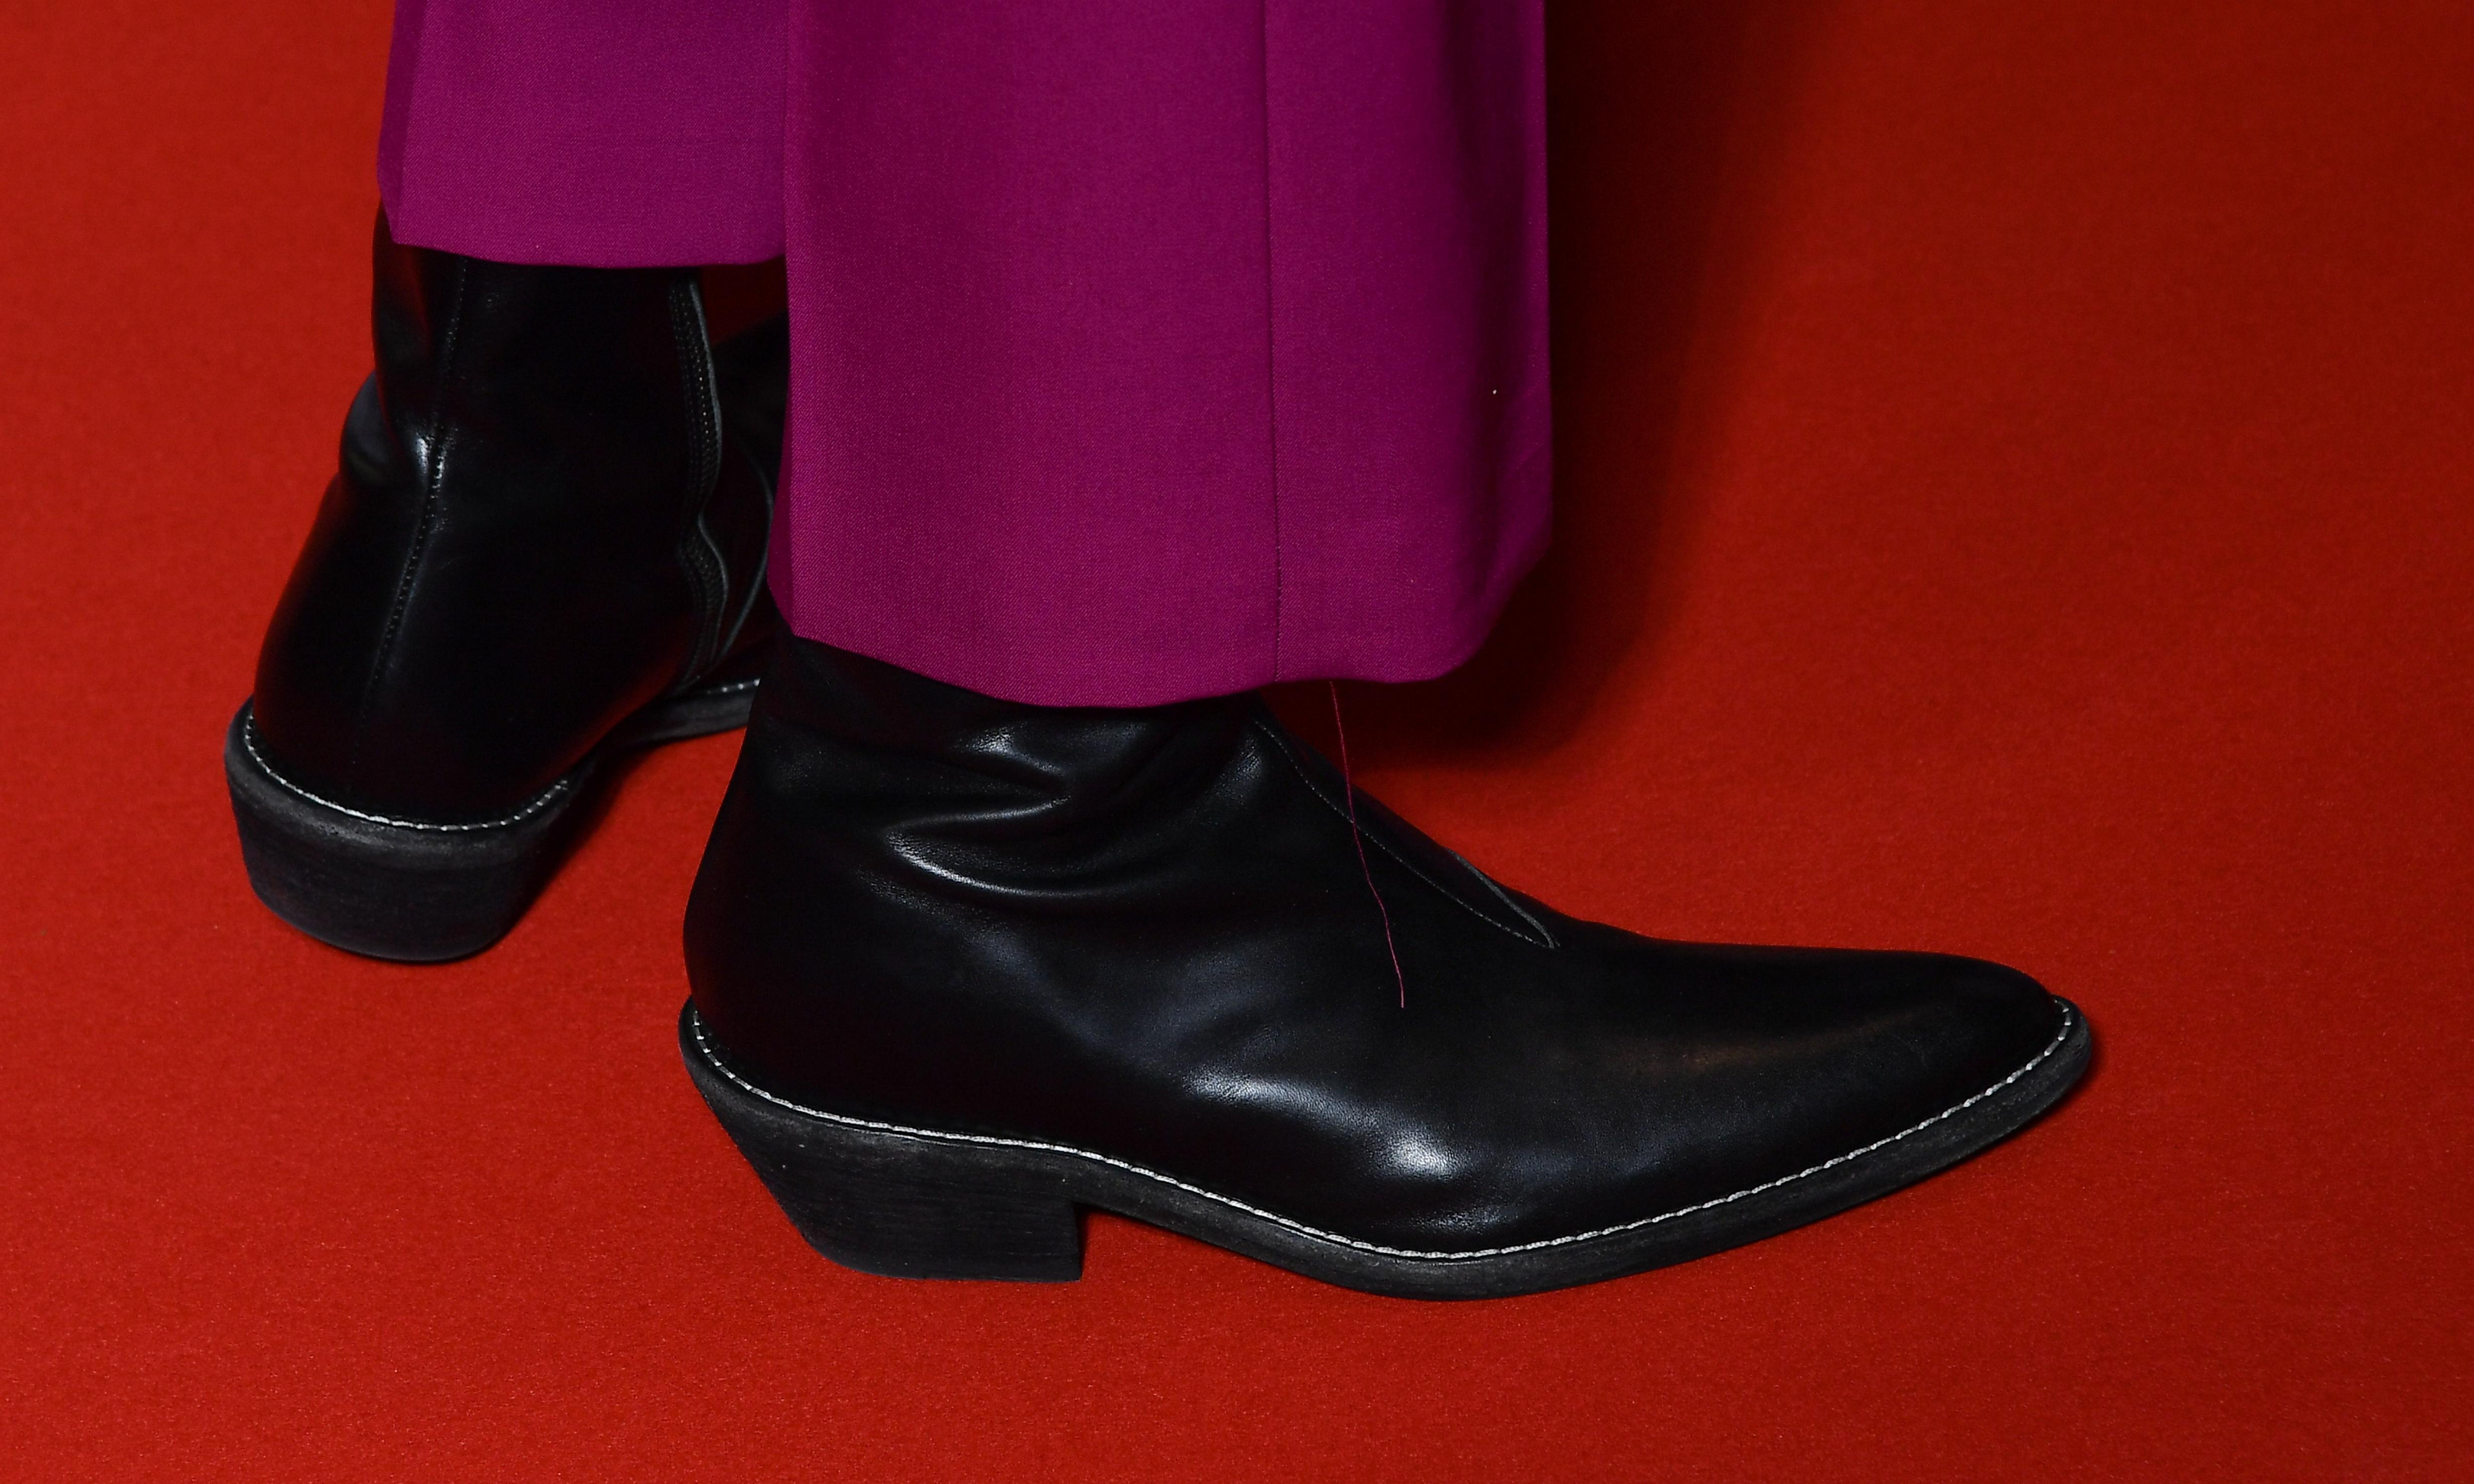 High fashion: the rise of heels for men